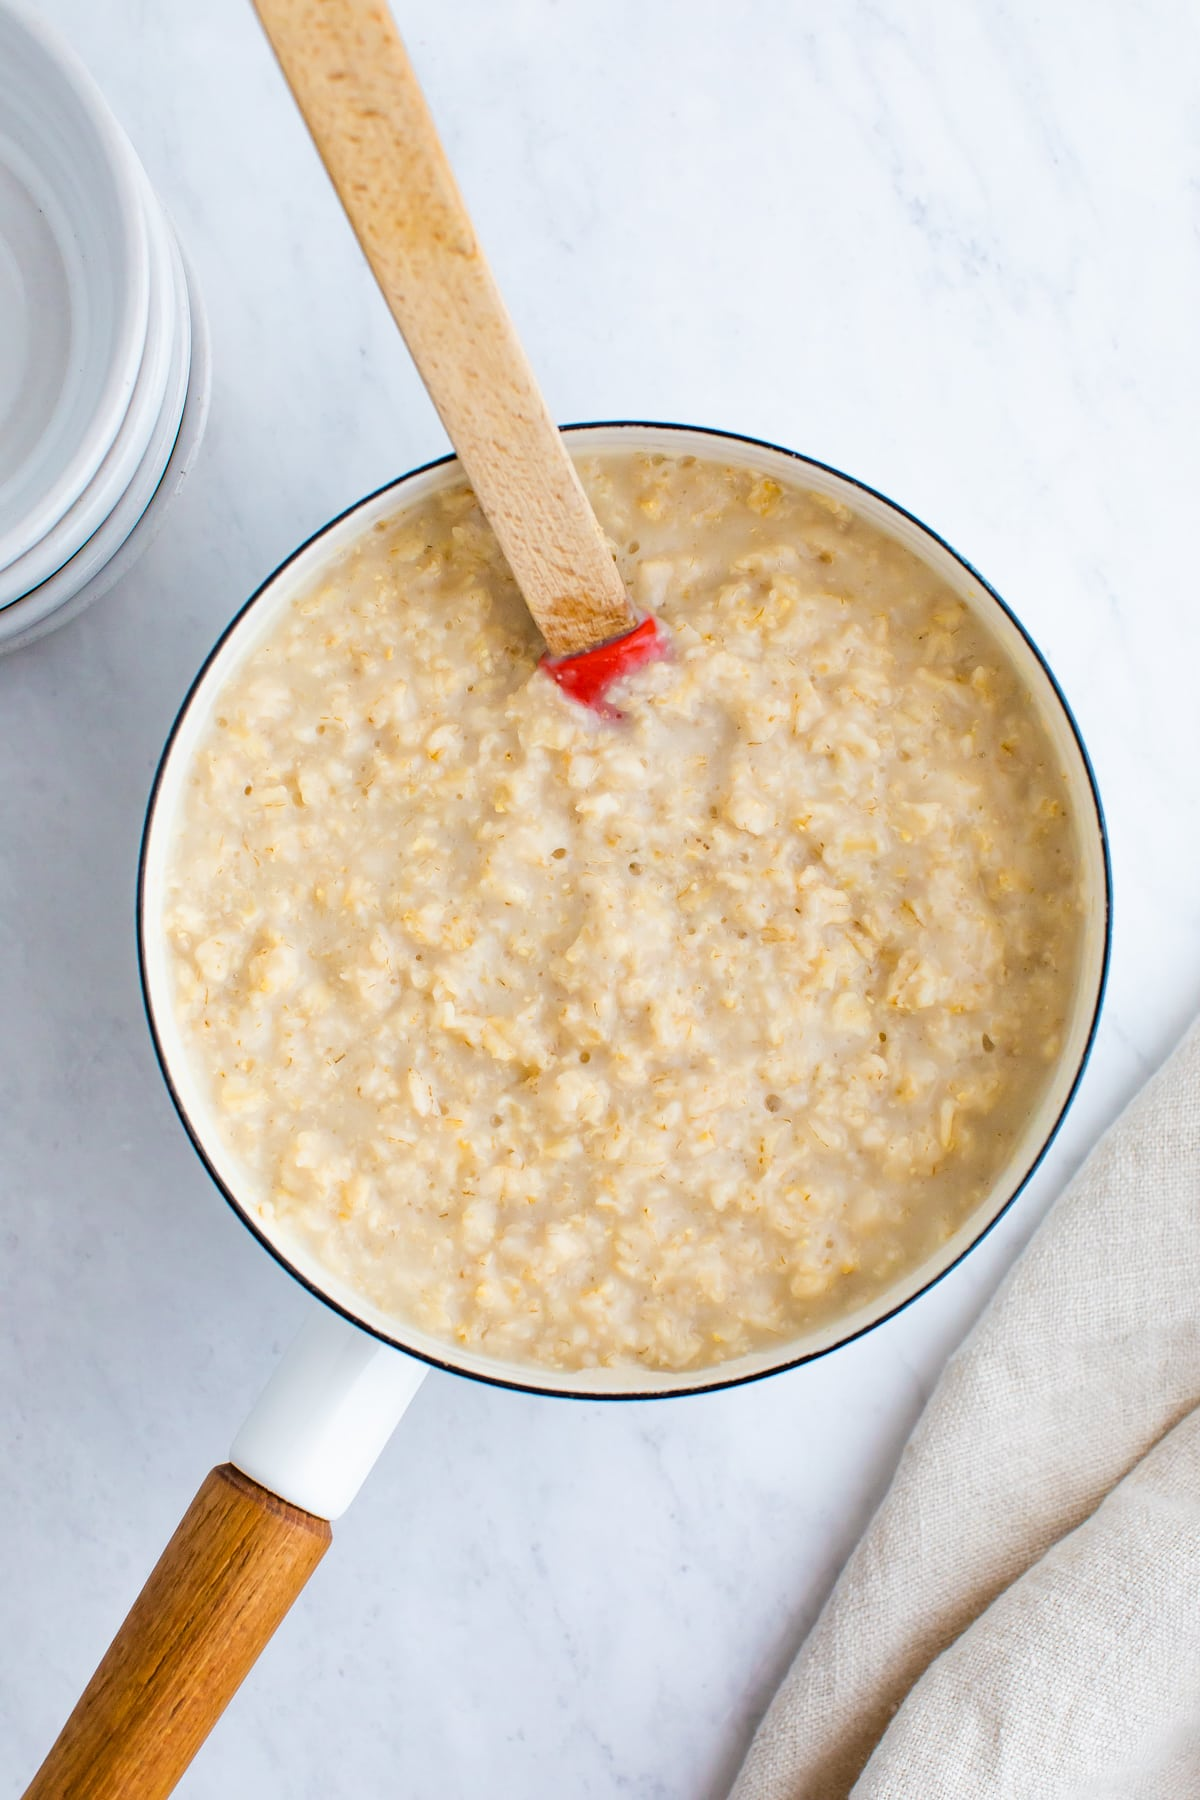 Pot with oatmeal and a spoon.